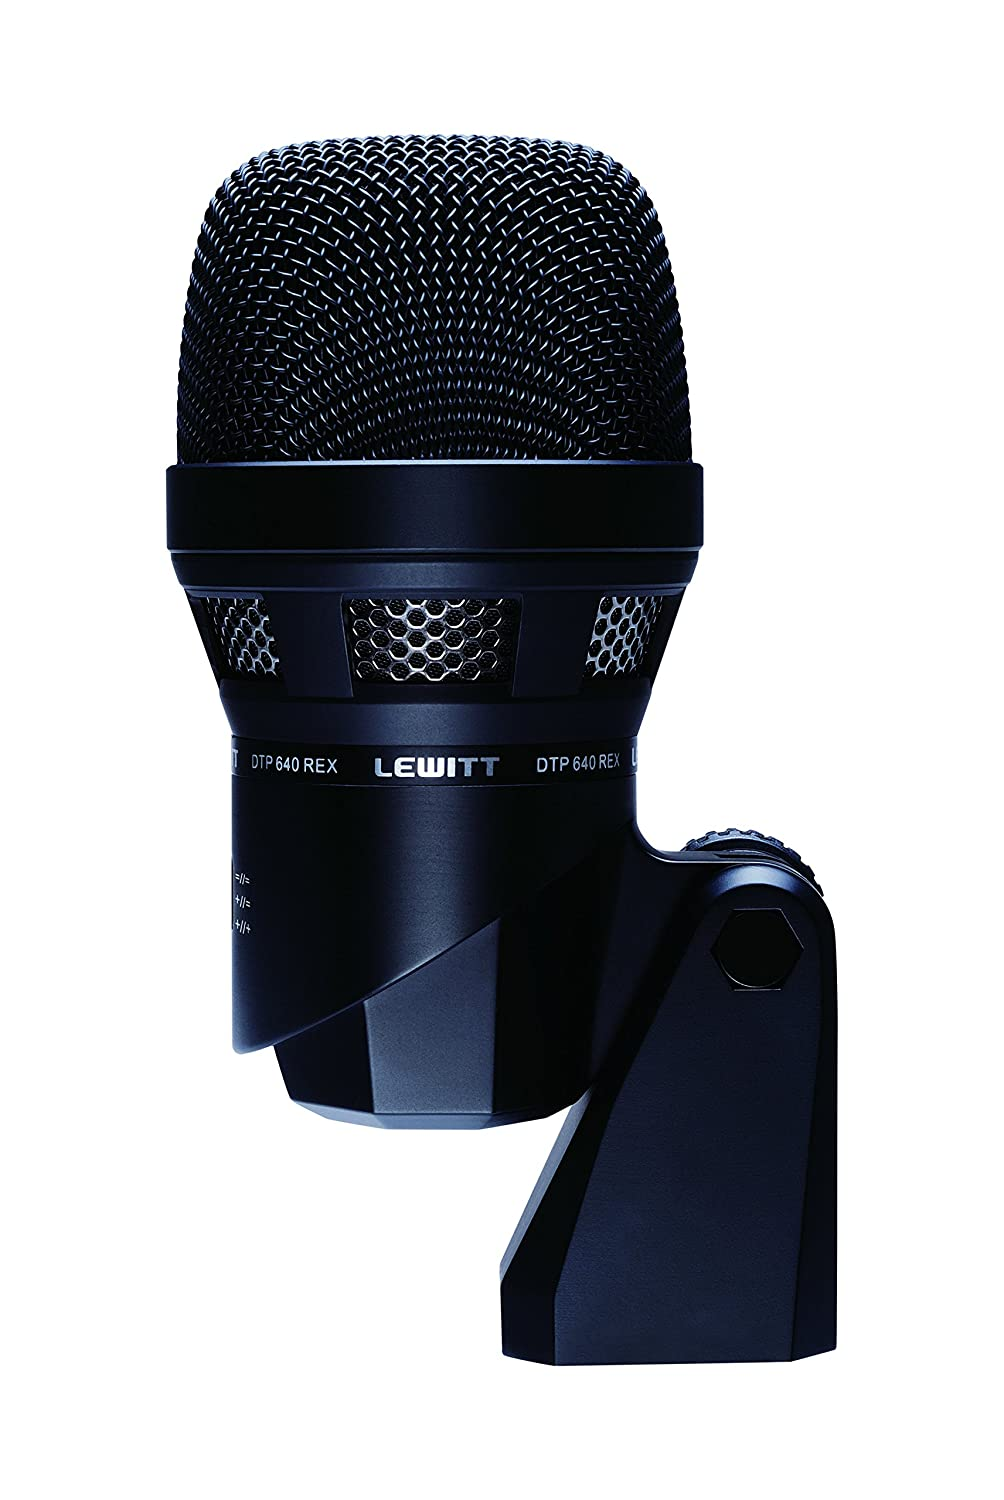 Lewitt Reference Class Dual Element Bass Drum Microphone Electret To Xlr Wiring Together With Sc4060 Dpa Microphones Dtp 640 Rex Musical Instruments